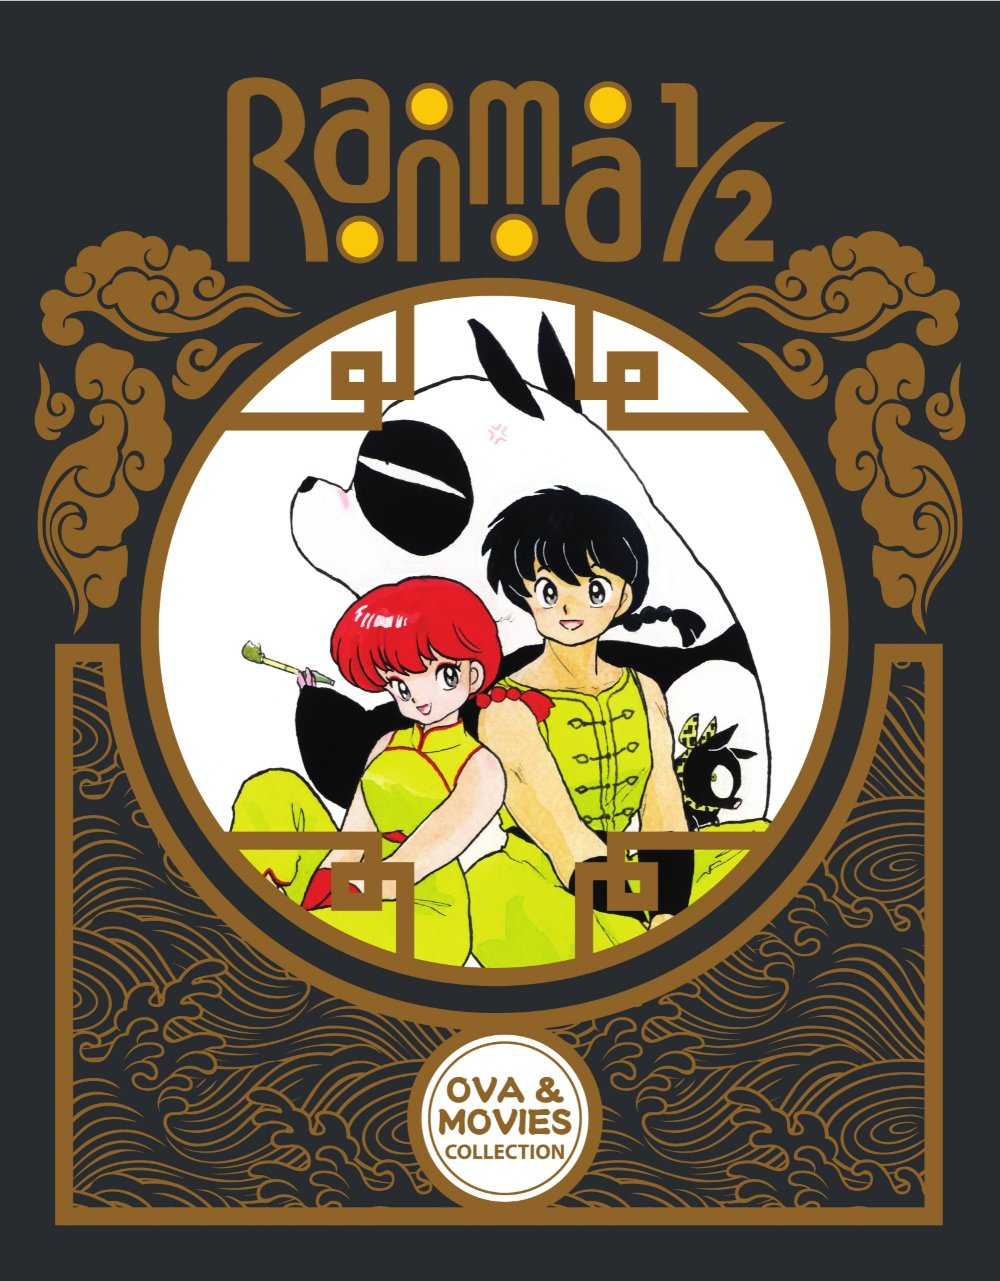 Ranma 1/2 OVA and Movie Collection Limited Edition Blu-ray 782009244646